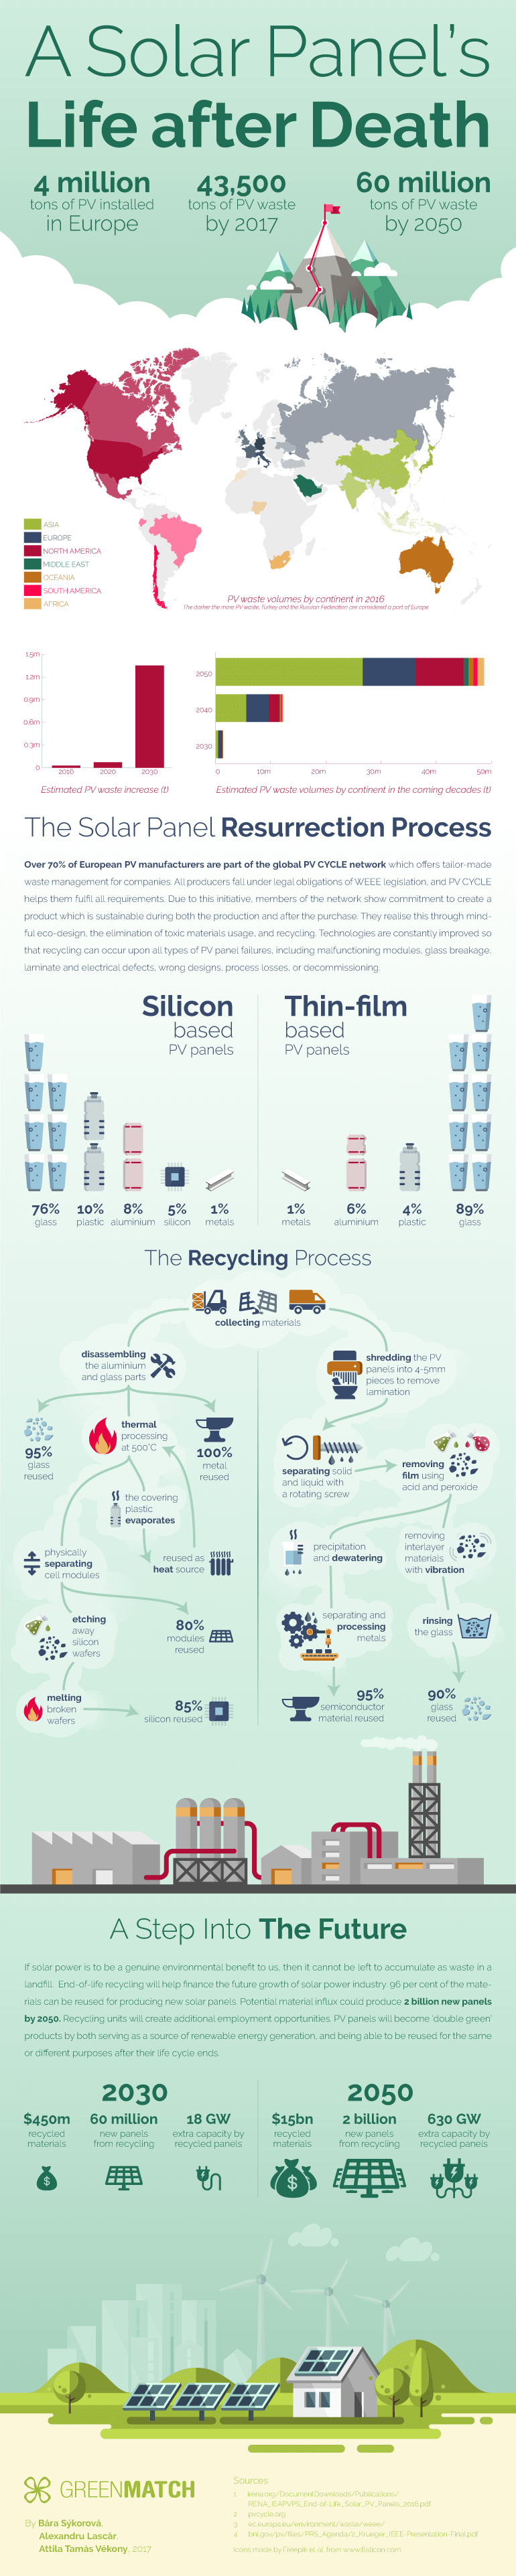 Recycling: A Solar Panels Life after Death [infographic]